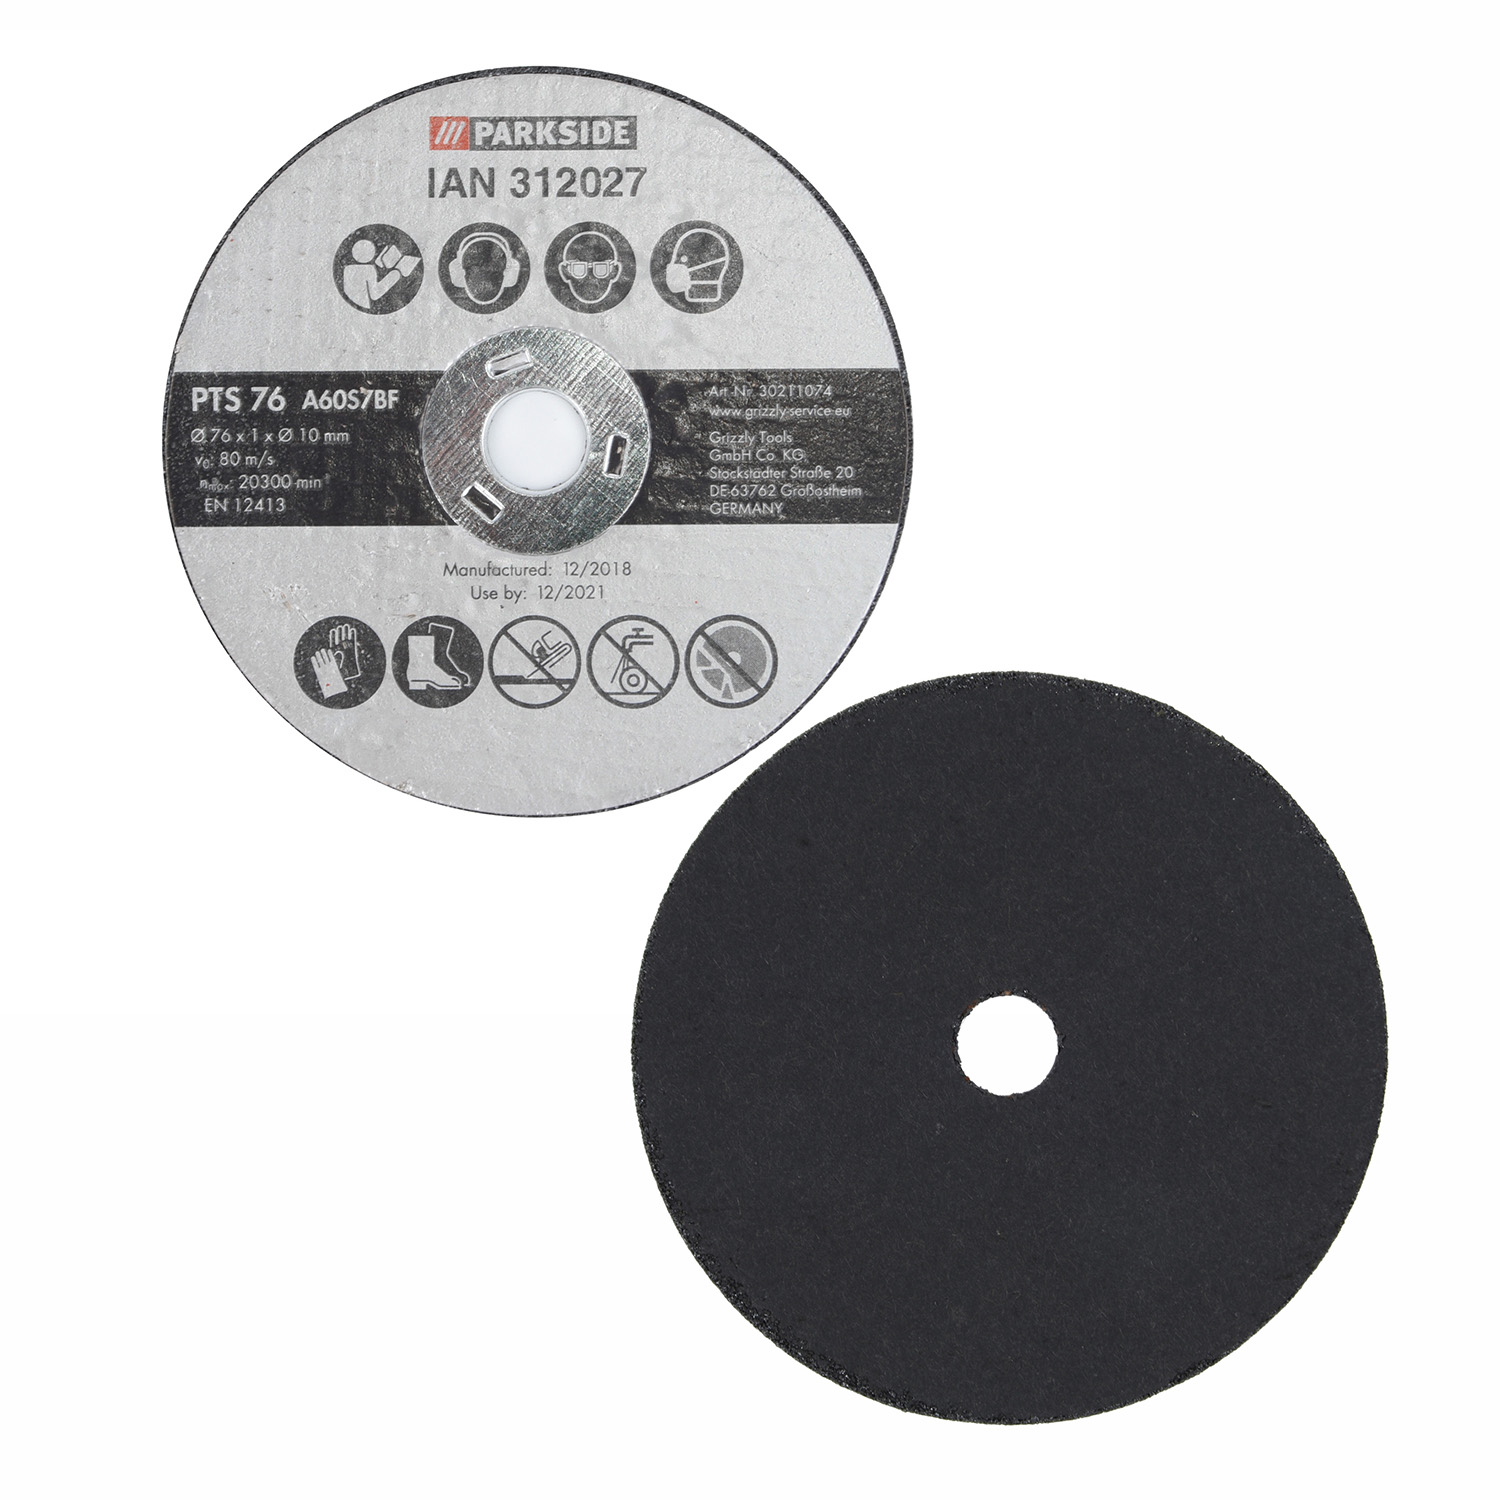 20 Pcs 75mm/3Resin Cutting Disc Metal Cutting Off Wheel Blade For Angle Grinder High Quality New Durable